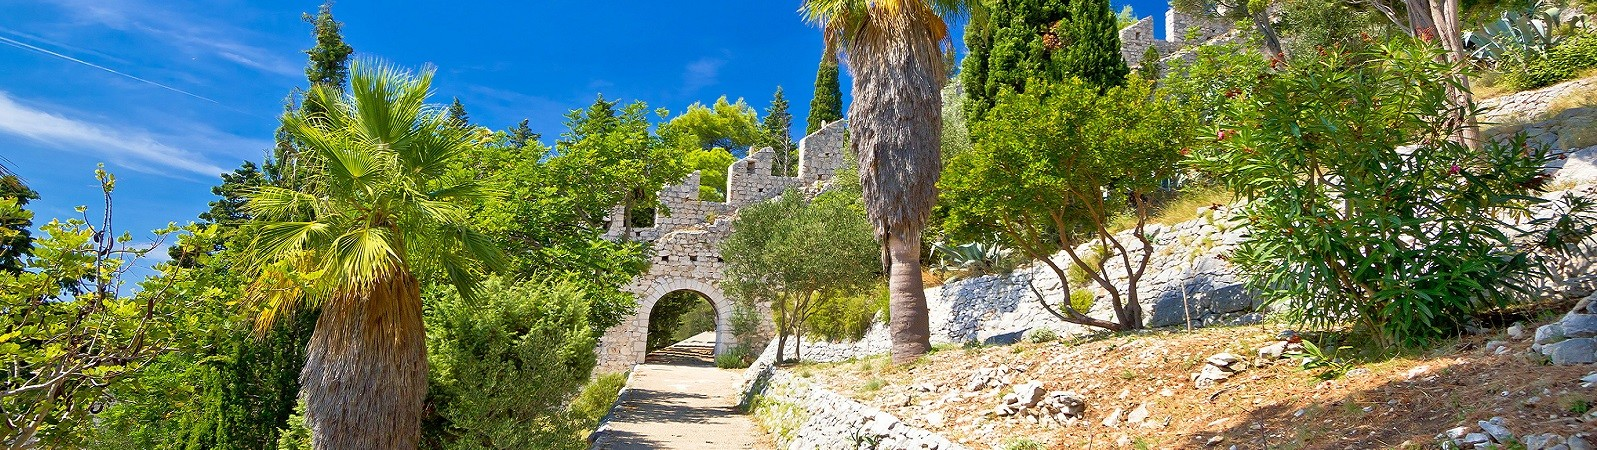 Travel to Dalmatian island and enjoy in biking and diving